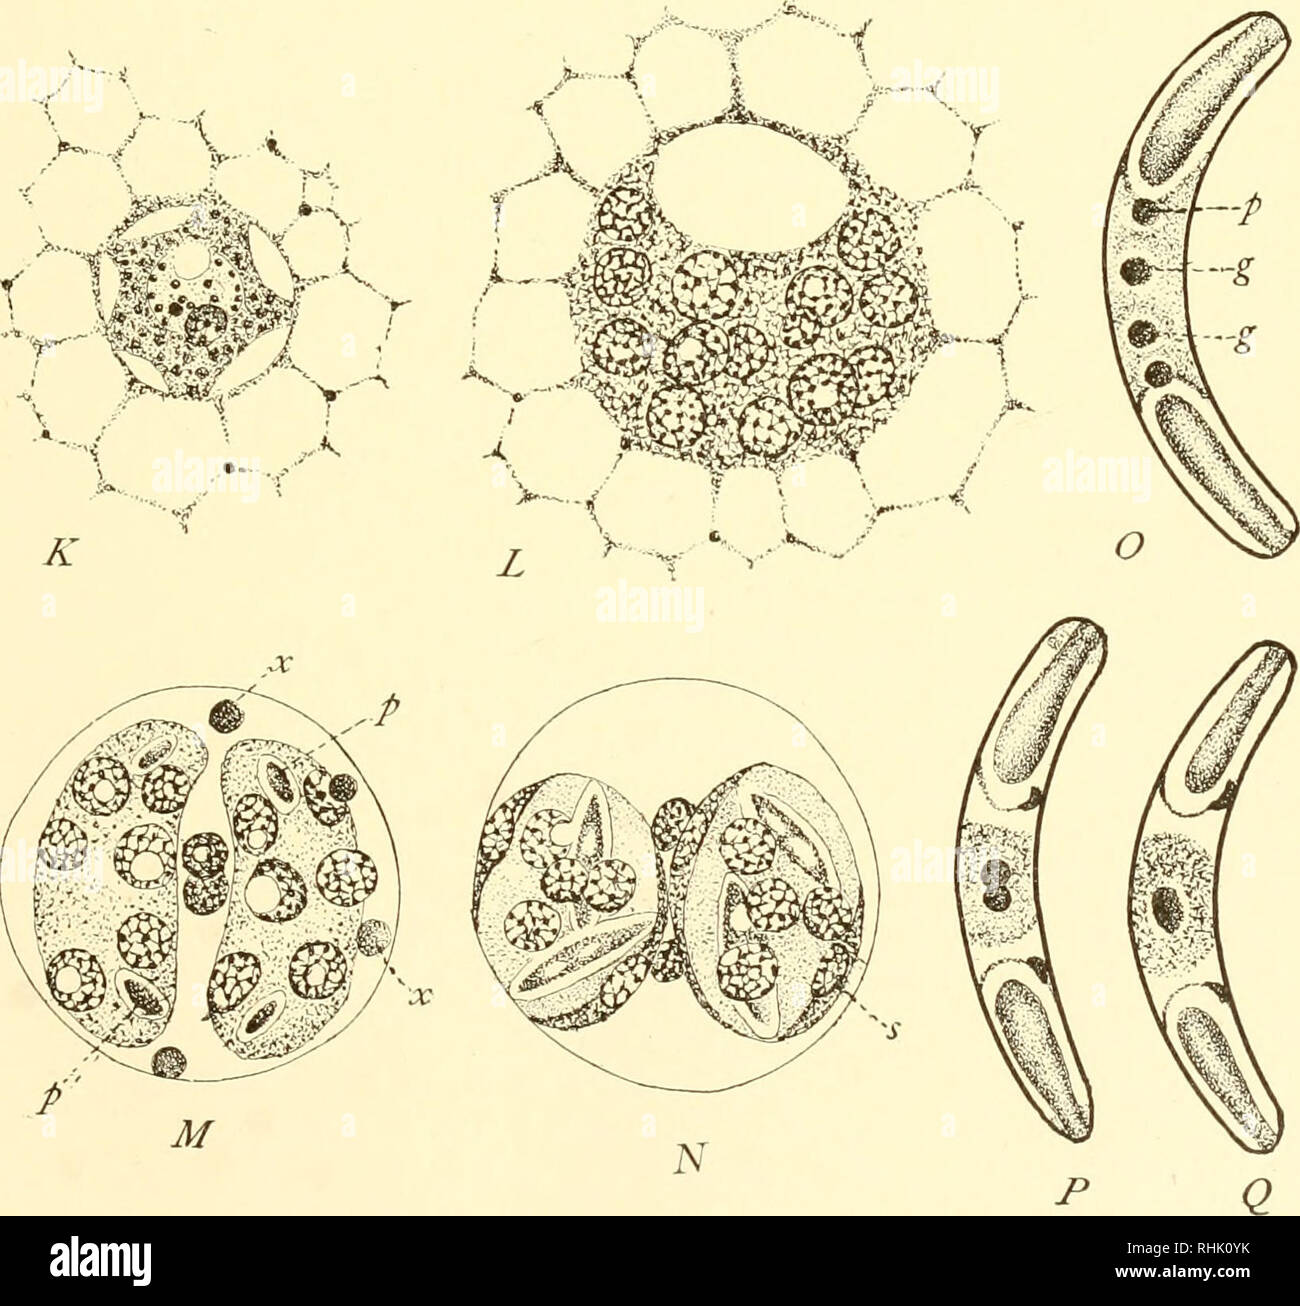 . The biology of the protozoa. Protozoa; Protozoa. fe#.-<â¢â¢â  -a -V,.  ^e^s3!. Fig. 164.âMyxobolus pfeifferi (A to J) and Sphaeromyxa sabrazesi (K to Q). See text, (After Keysselitz and Schroder.). Please note that these images are extracted from scanned page images that may have been digitally enhanced for readability - coloration and appearance of these illustrations may not perfectly resemble the original work.. Calkins, Gary N. (Gary Nathan), b. 1869. Philadelphia, Lea & Febiger Stock Photo